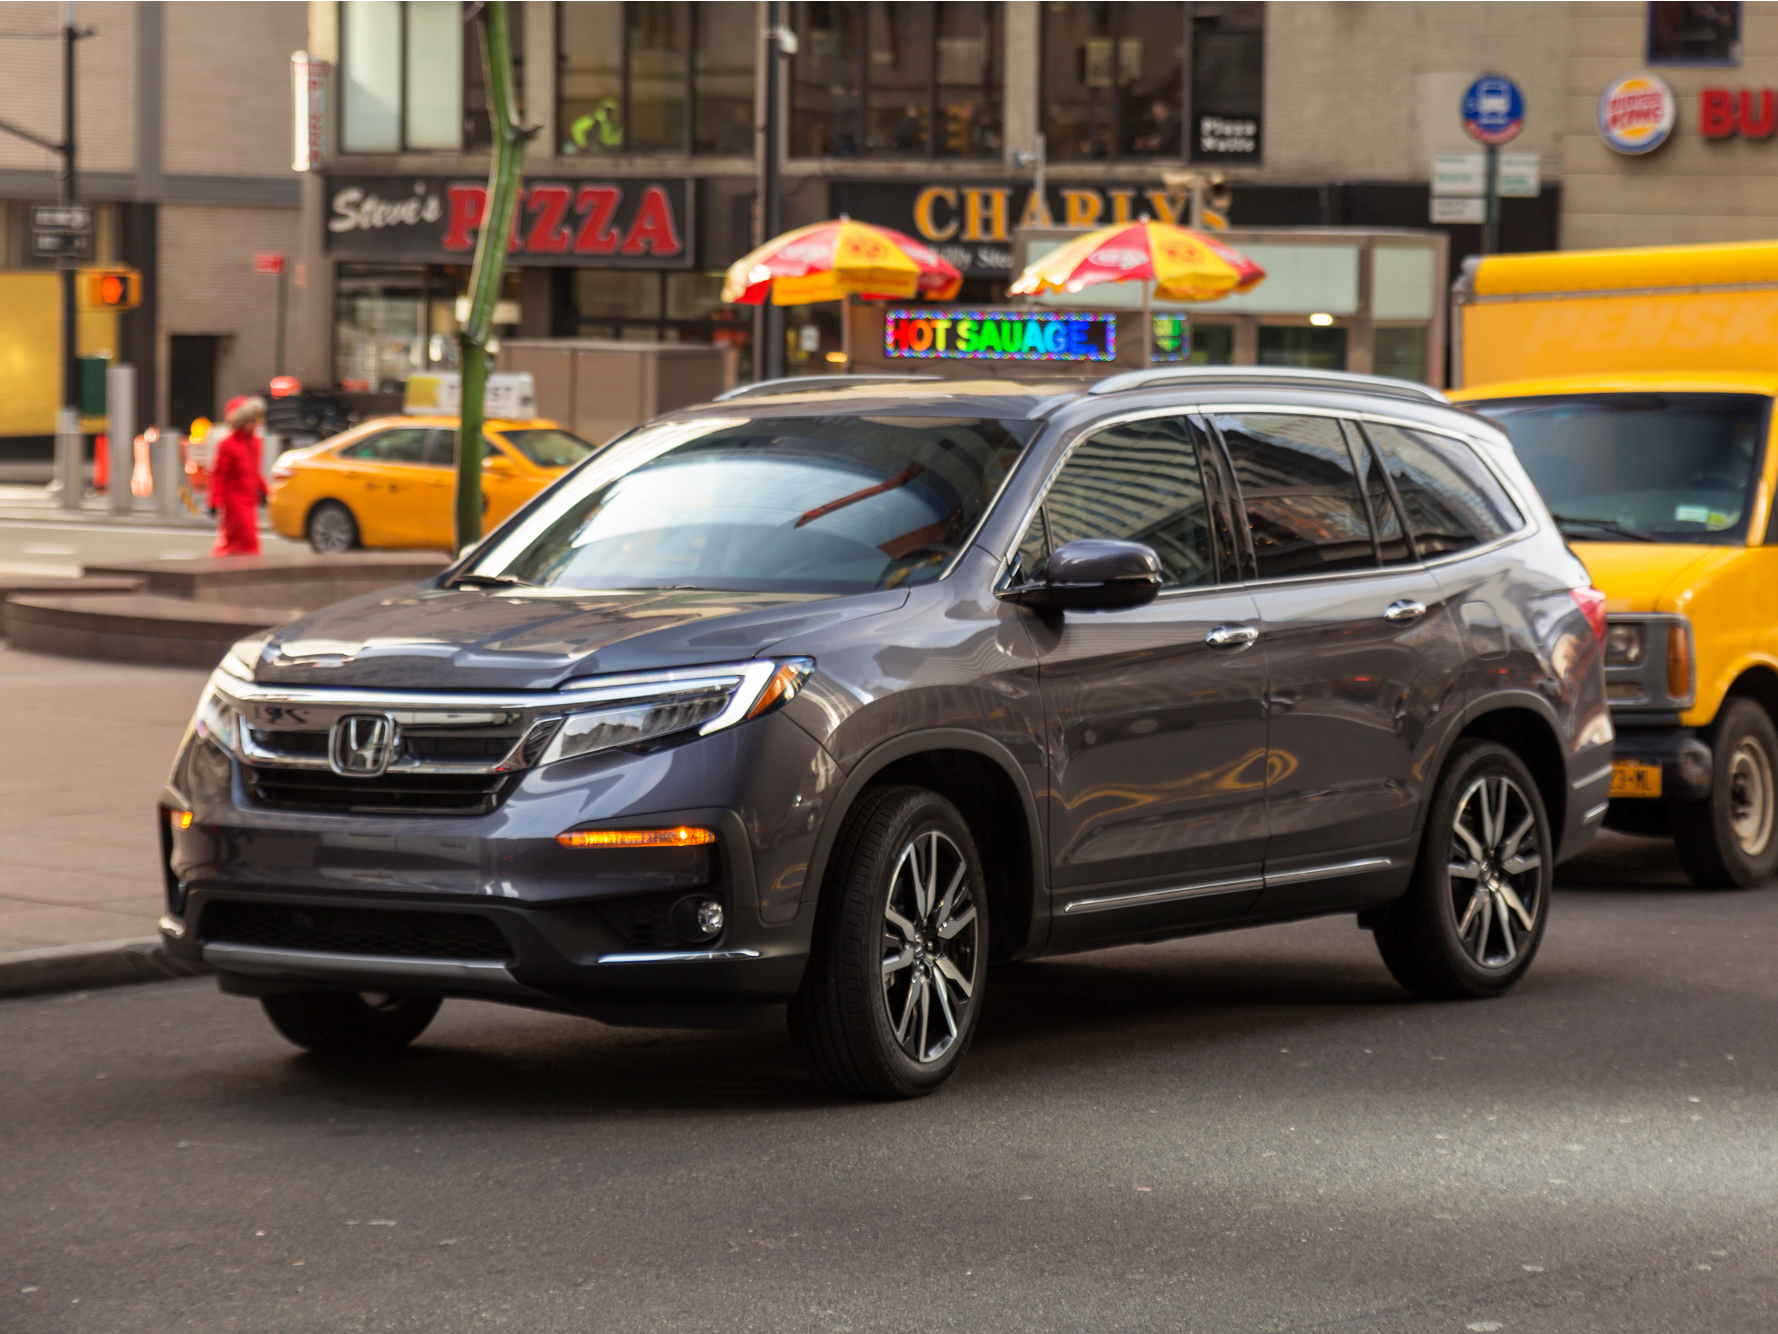 We drove a 49,000 Honda Pilot, one of the best family